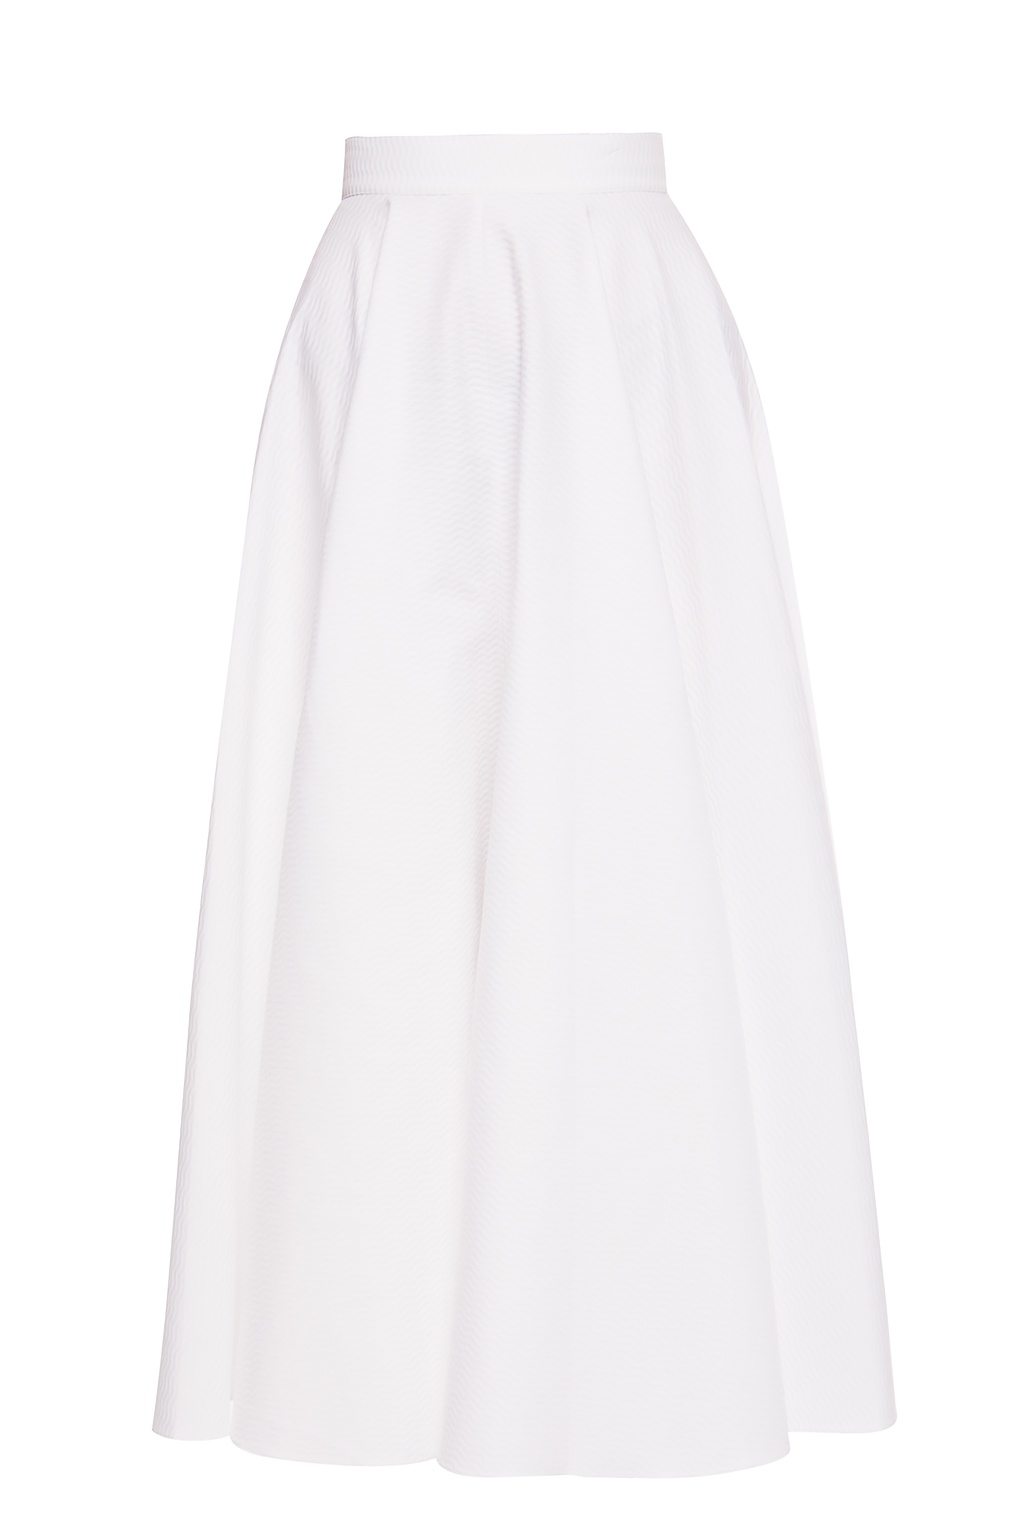 Alaia Skirt with gathers